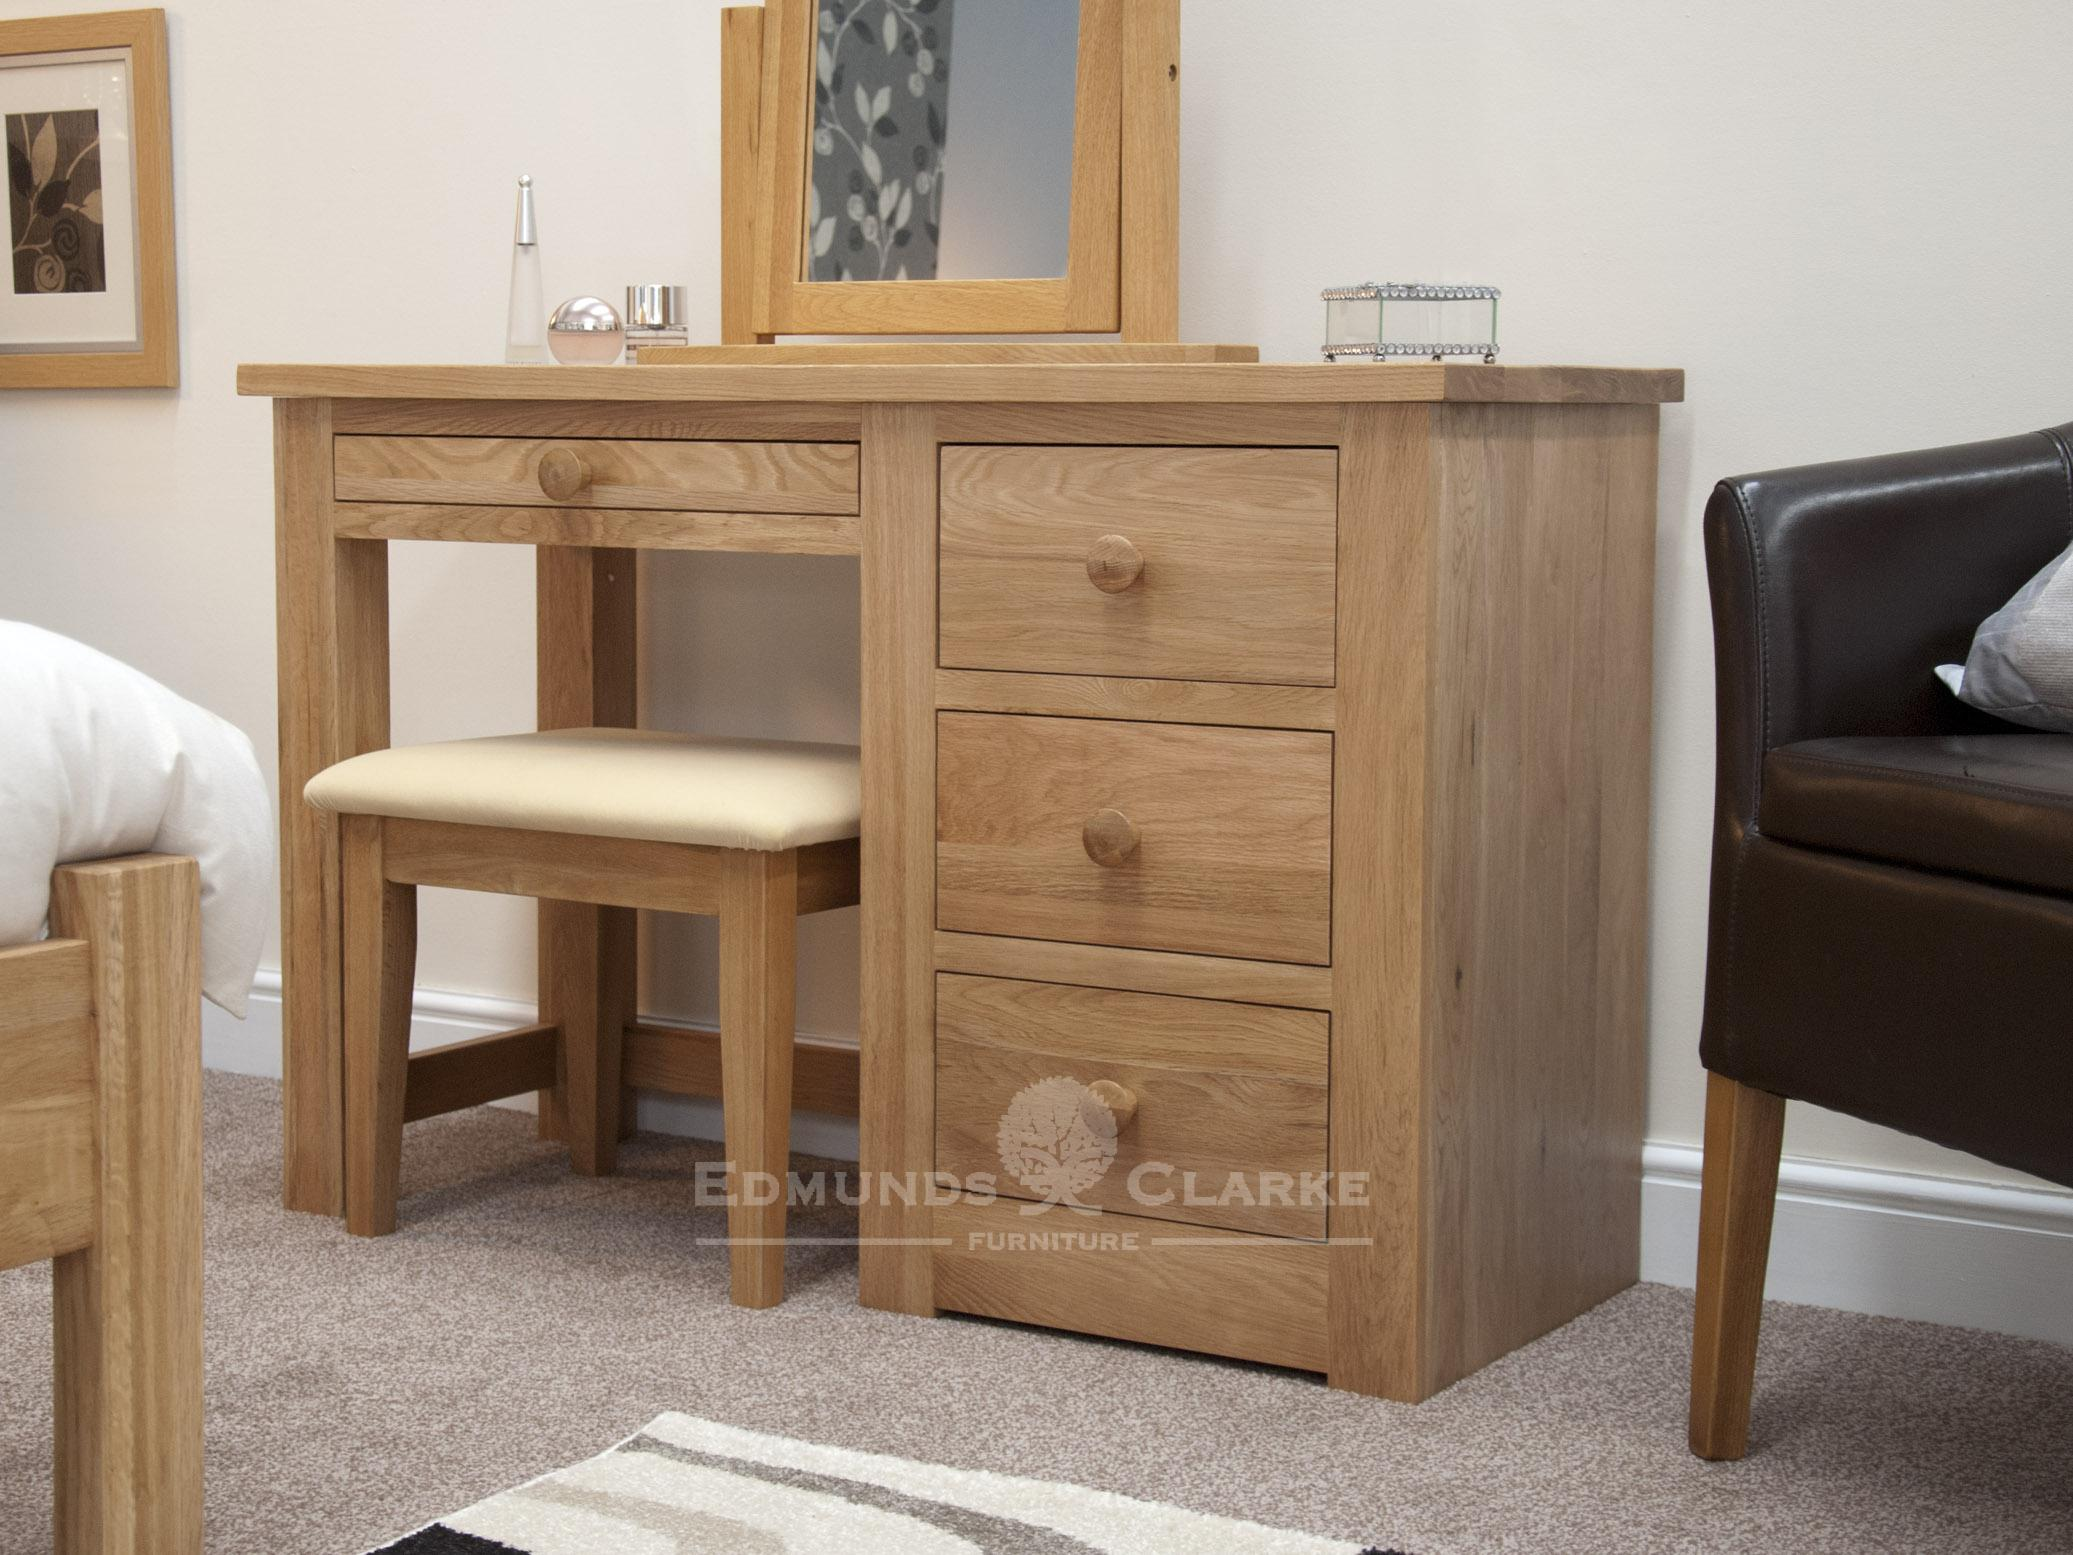 solid oak single pedestal dressing table three drawers on right side jewellery drawer above kneehole, square edge design